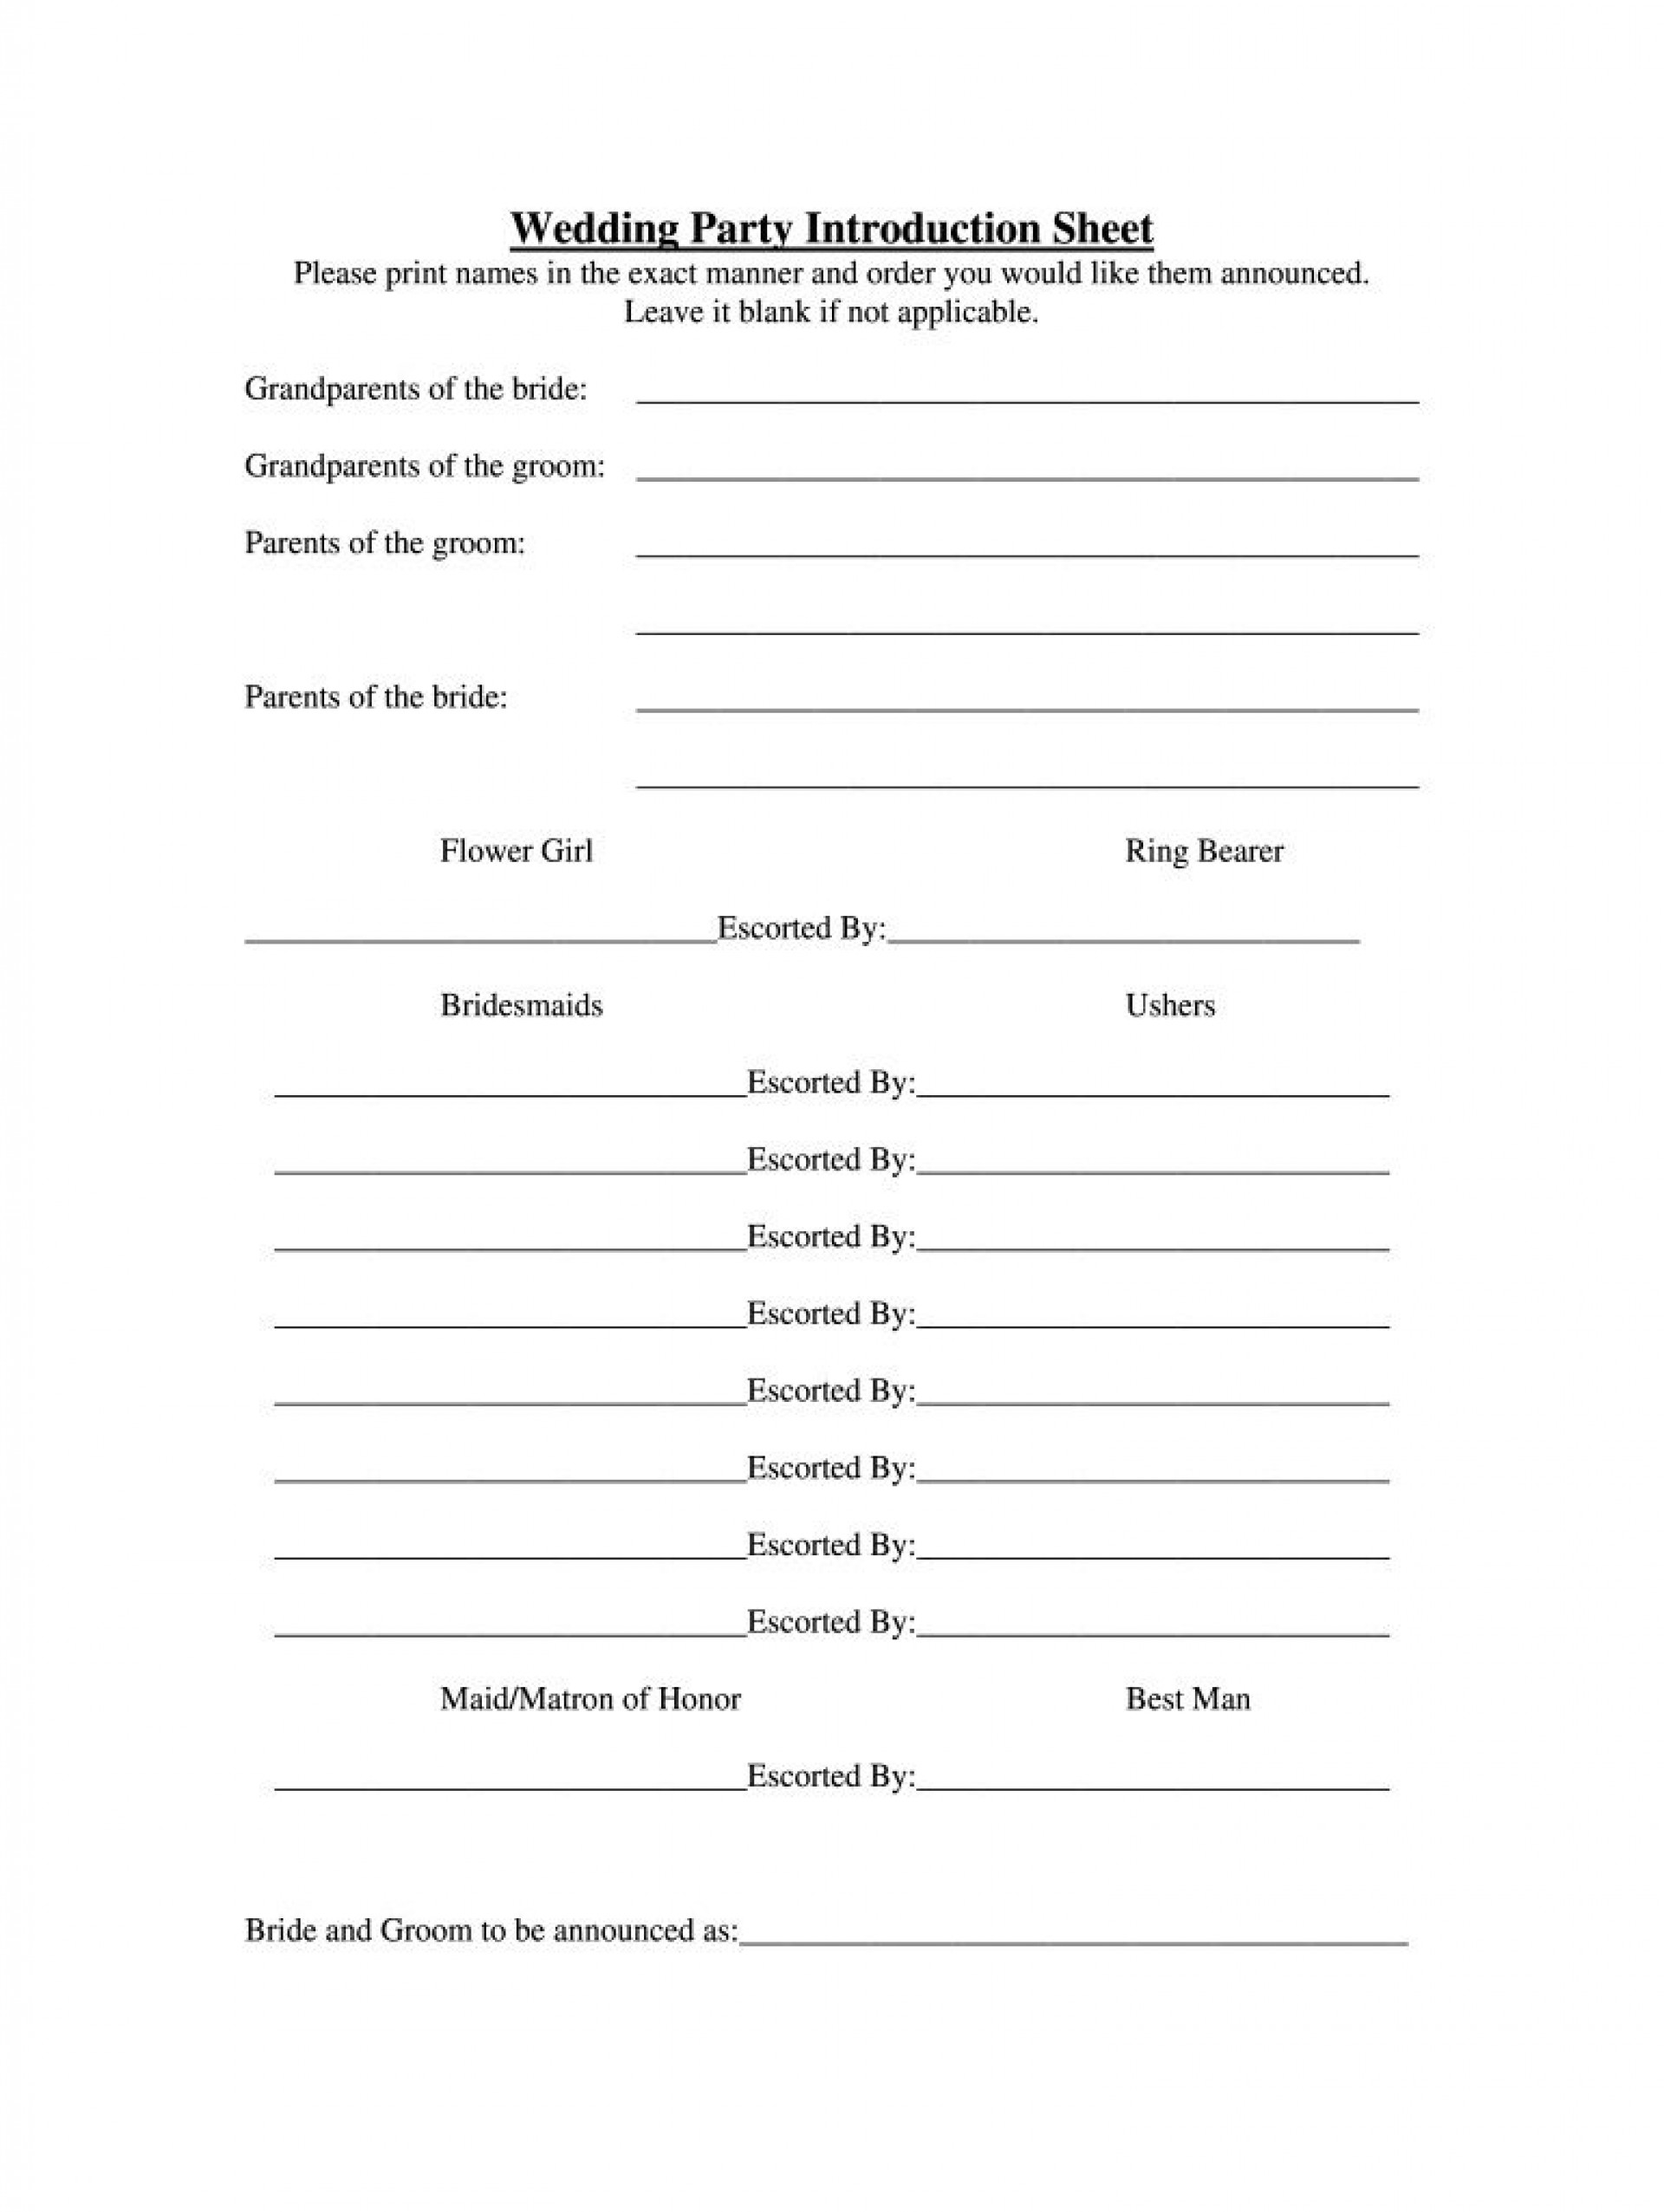 007 Fearsome Wedding Party List Template Picture  Printable Member1920